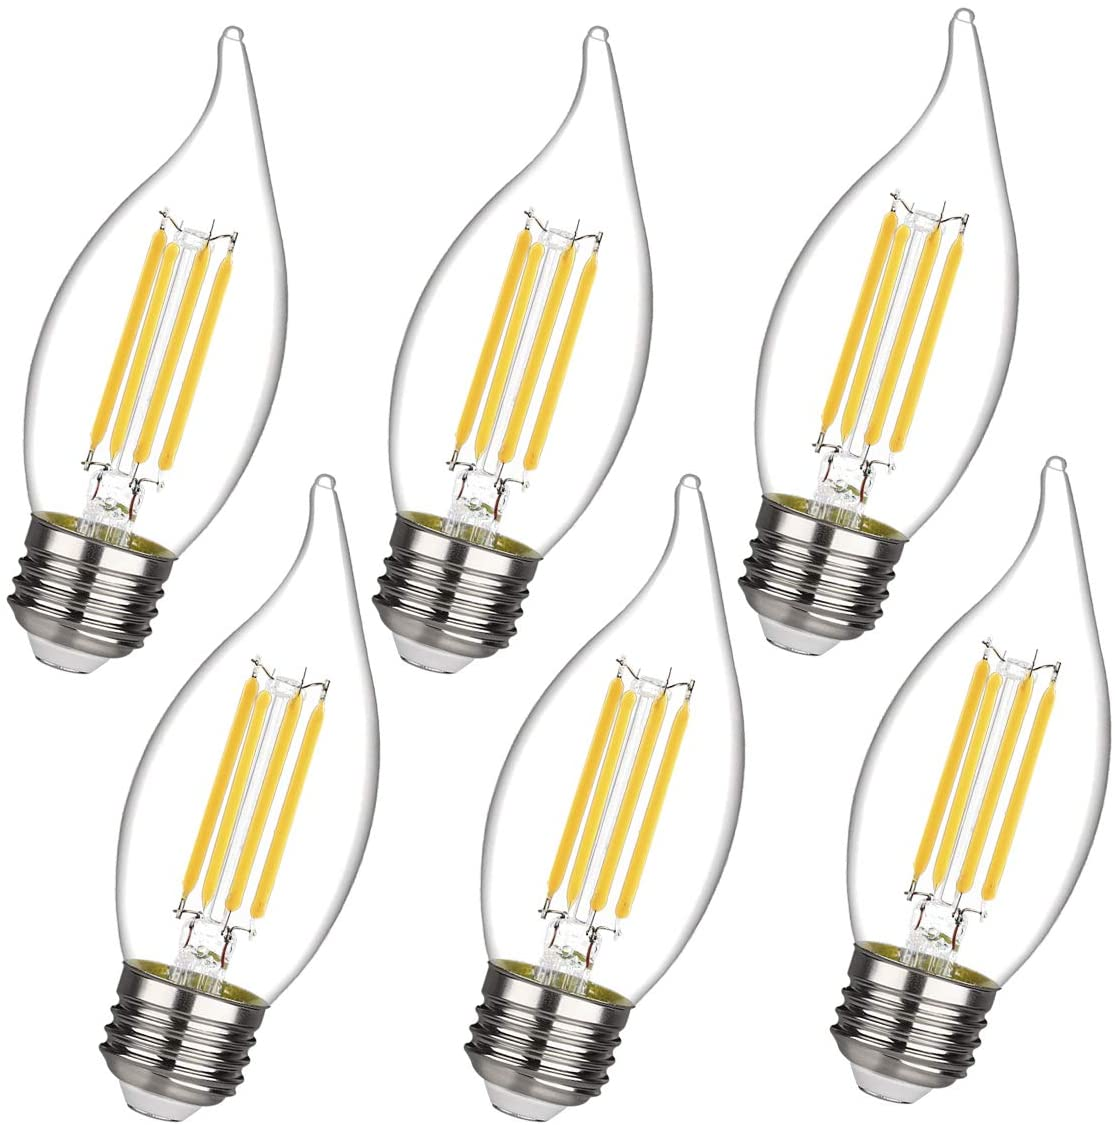 C35 CA11 Chandelier led Light Max 64% OFF Limited price Bulbs Equivalent 4 4W Dimmable to